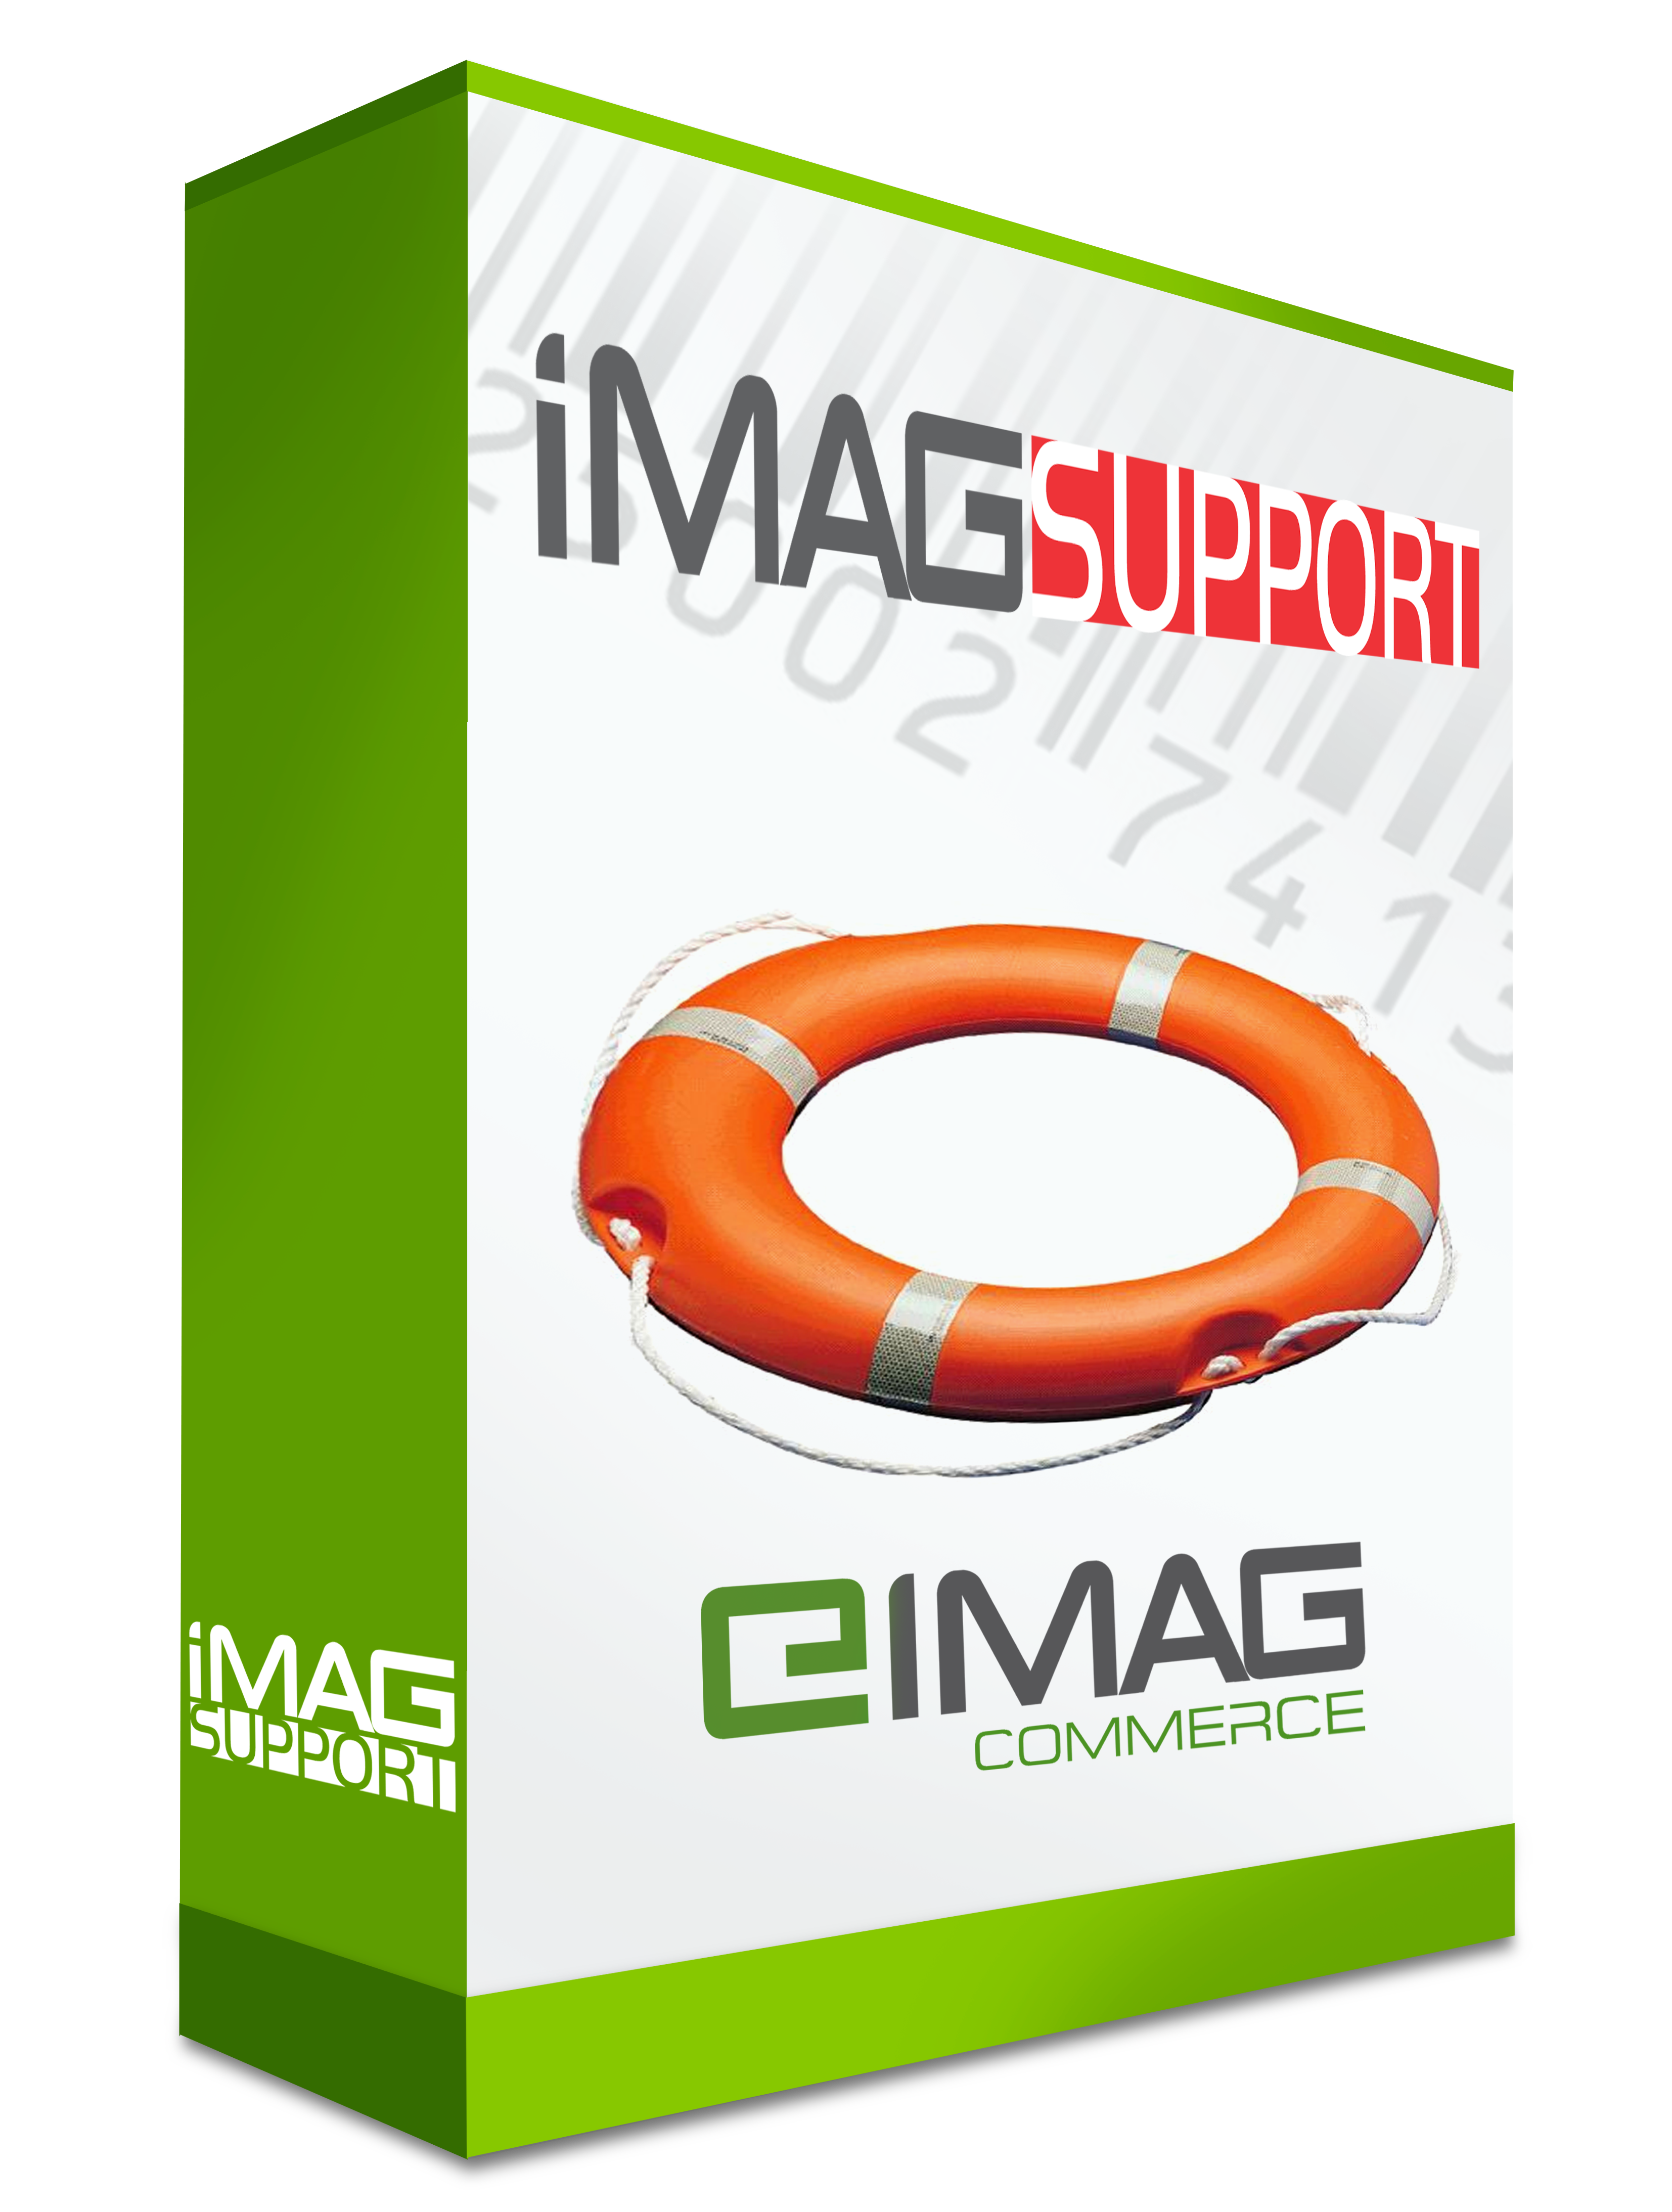 imag support